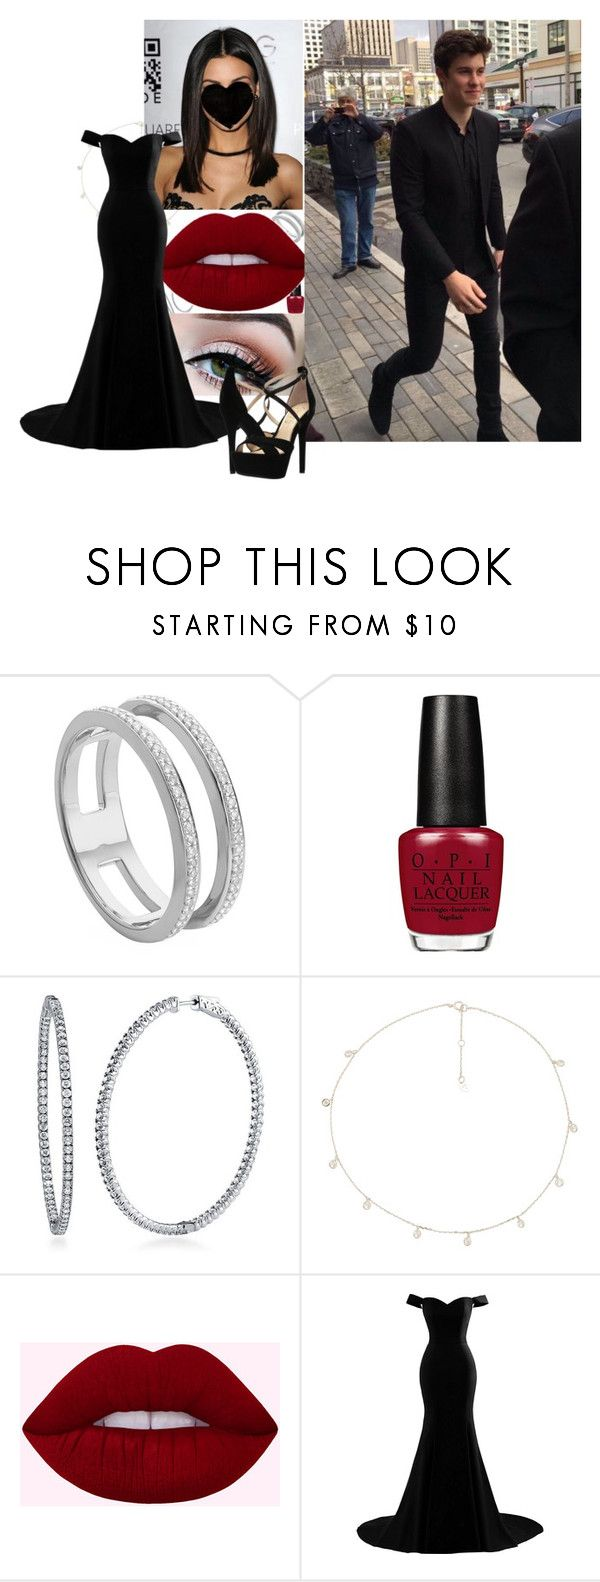 """""""✨👽✨"""" by taaniia ❤ liked on Polyvore featuring Monica Vinader, BERRICLE, The M Jewelers NY and Jessica Simpson"""